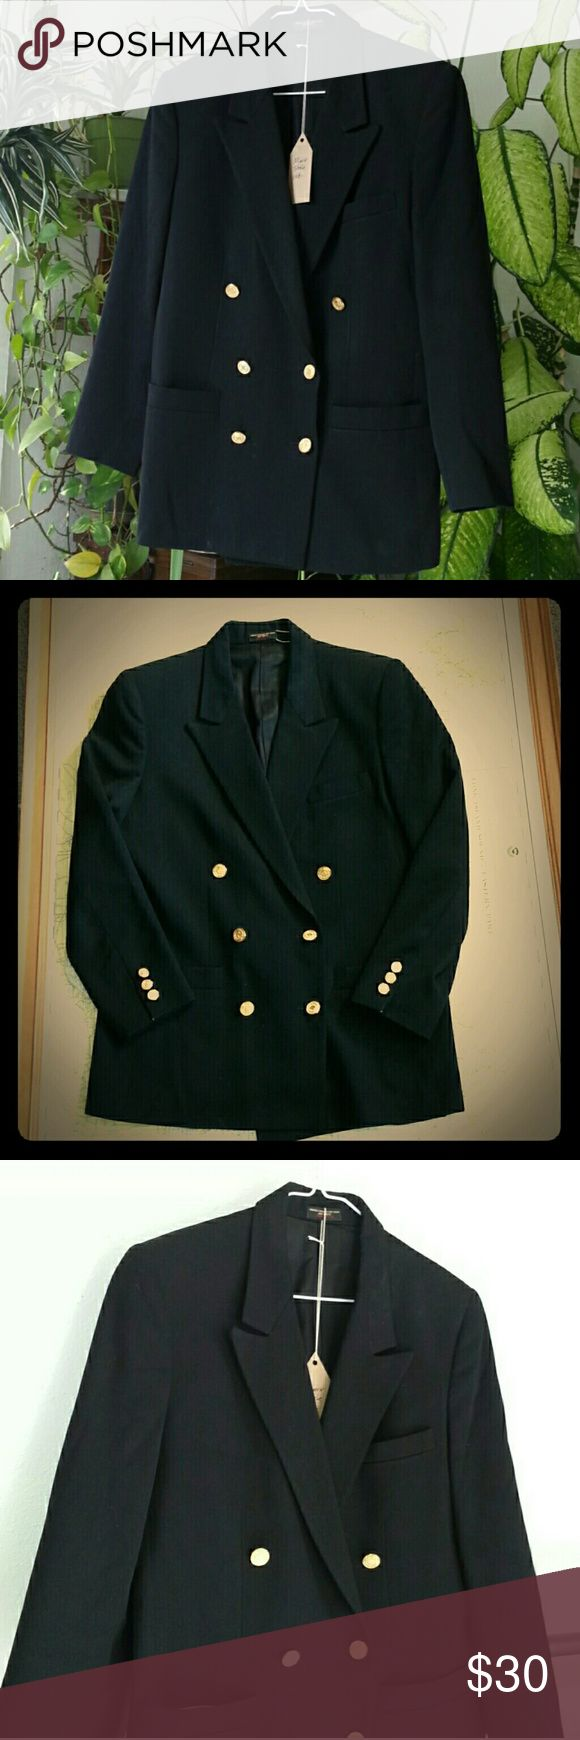 Vintage Womens Military Blazer Womens Vintage Military style blazer, perfect for a photo shoot or costume party, has a few stains in the bottom. Vintage Jackets & Coats Blazers